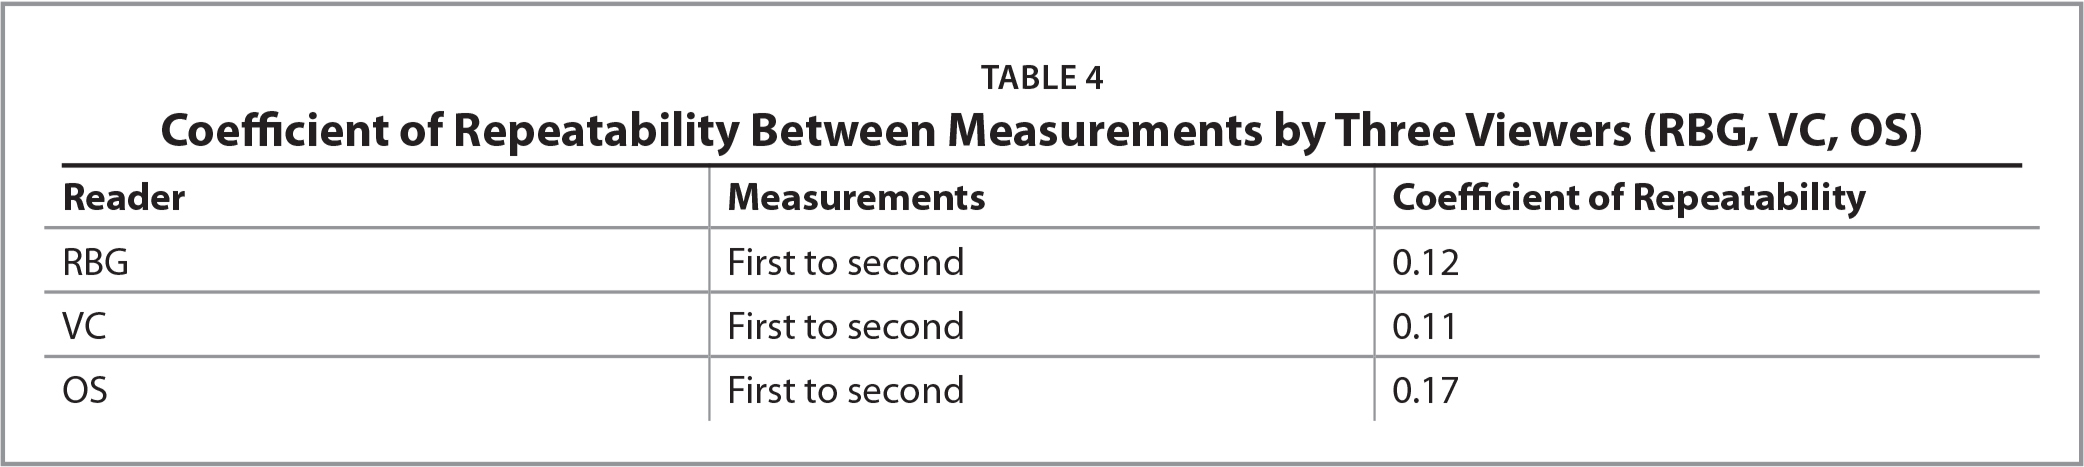 Coefficient of Repeatability Between Measurements by Three Viewers (RBG, VC, OS)